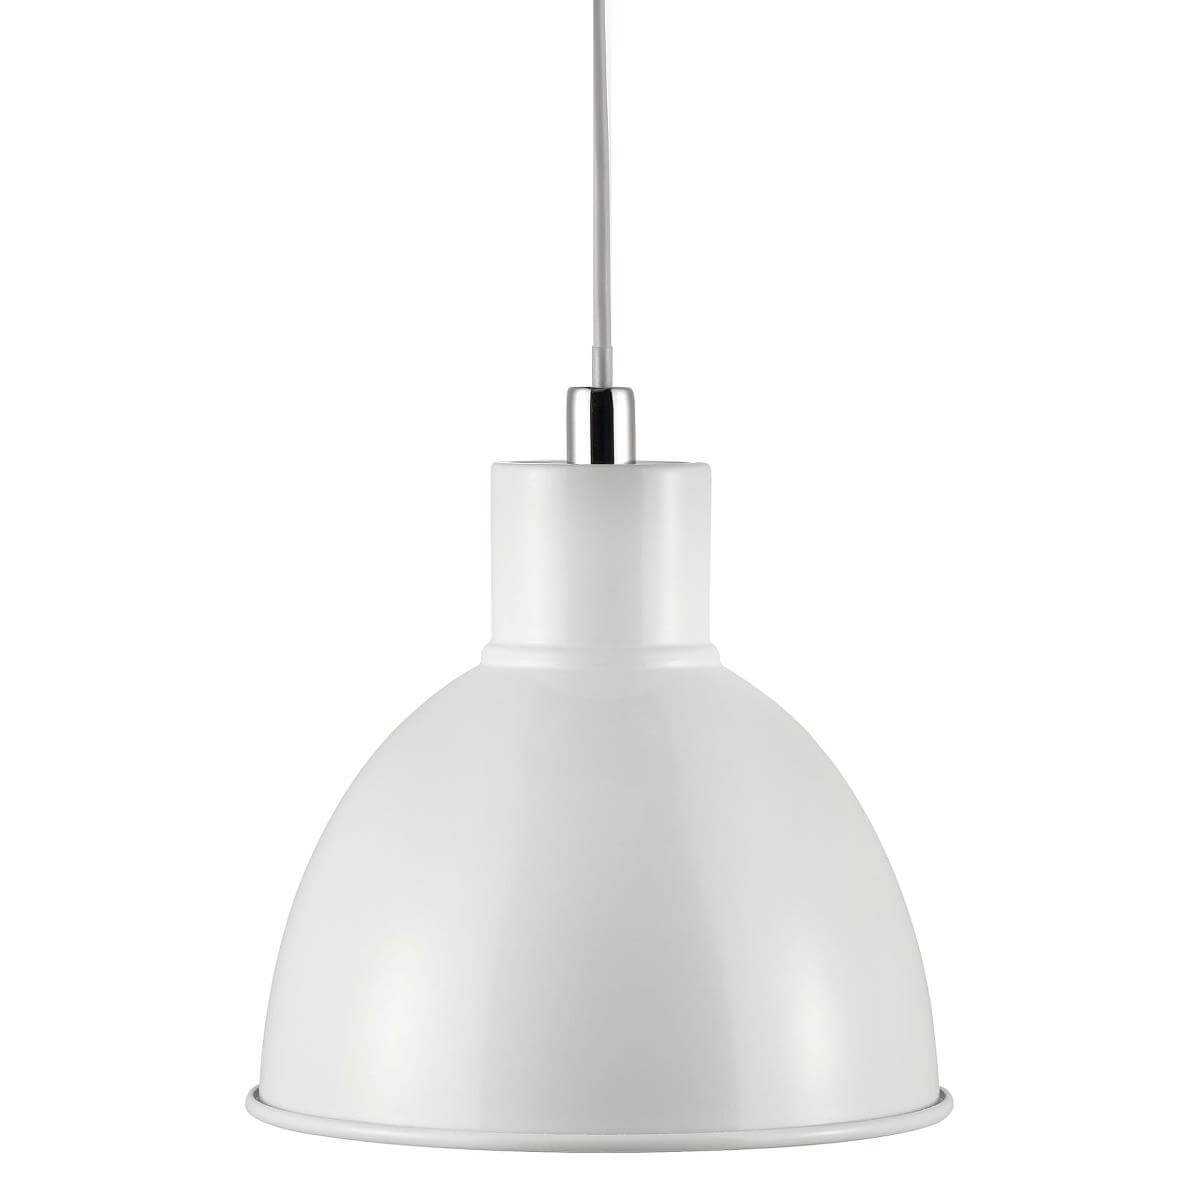 Suspension Pop blanc satin - Nordlux